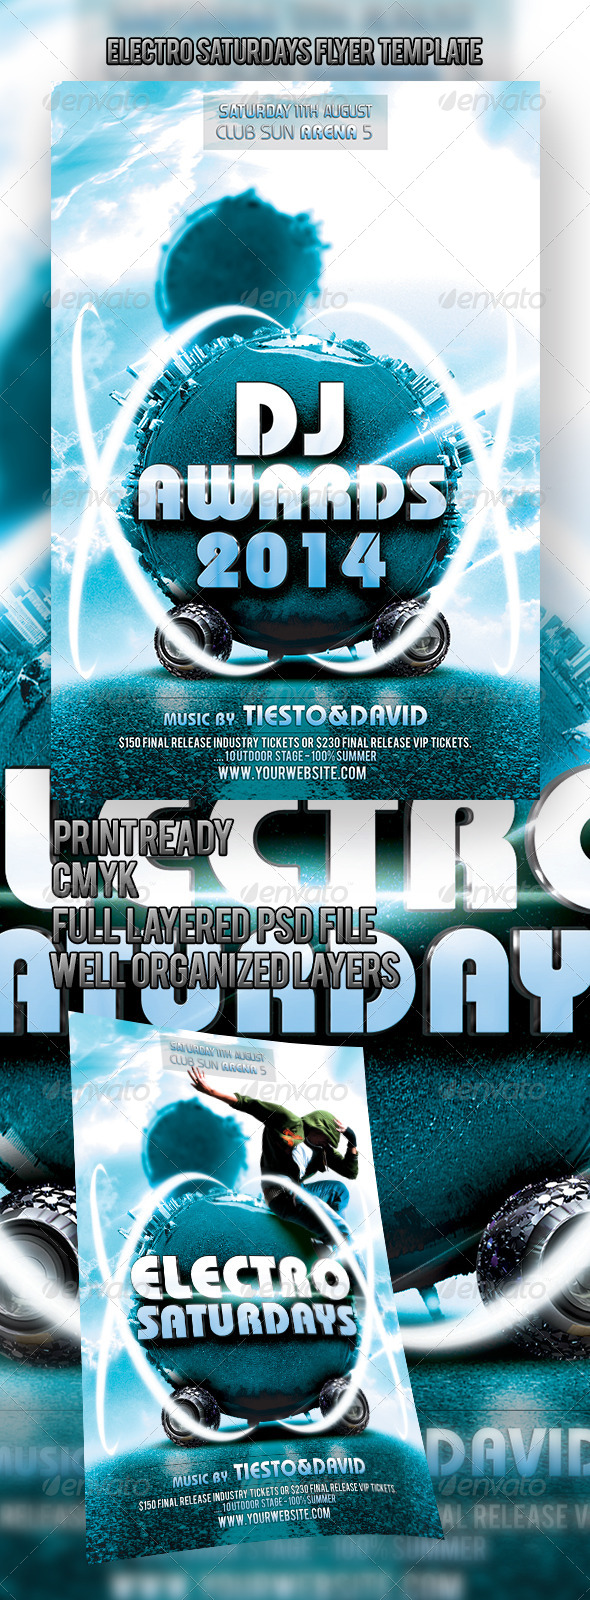 GraphicRiver Electro Saturdays Flyer Template 4618949